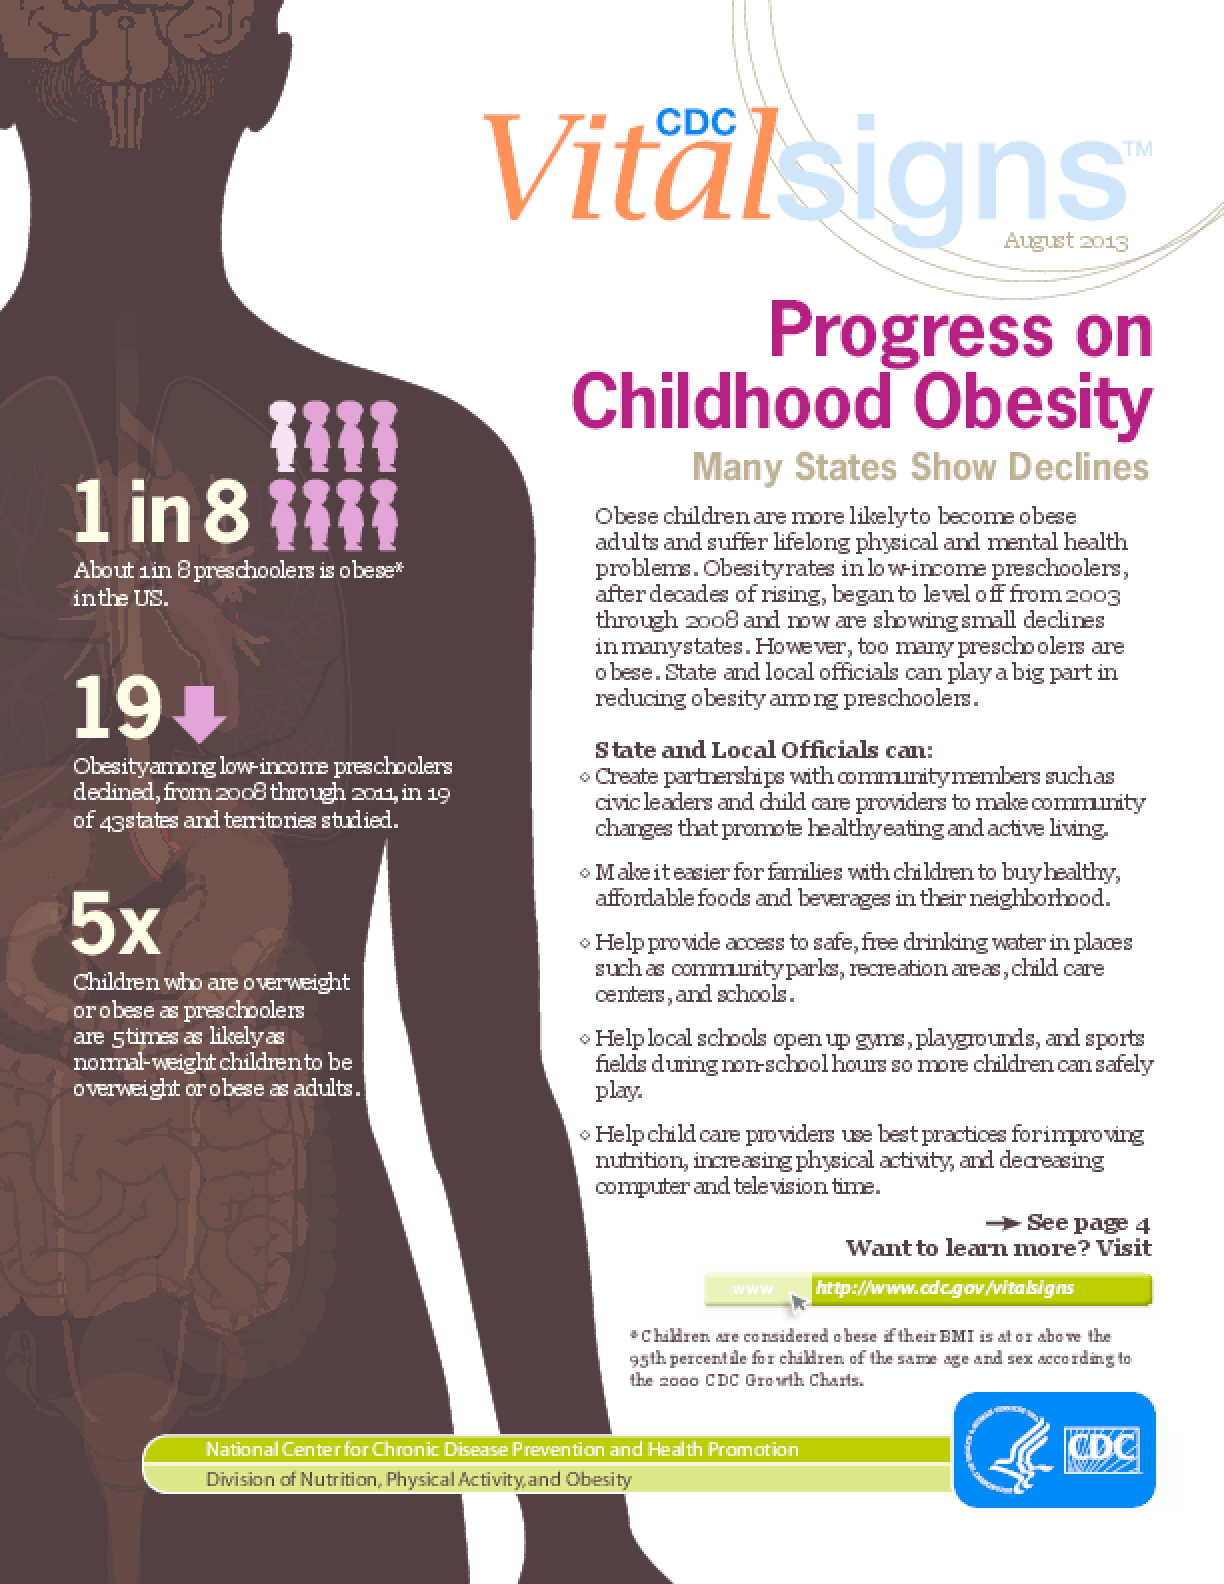 Progress on Childhood Obesity: Many States Show Declines